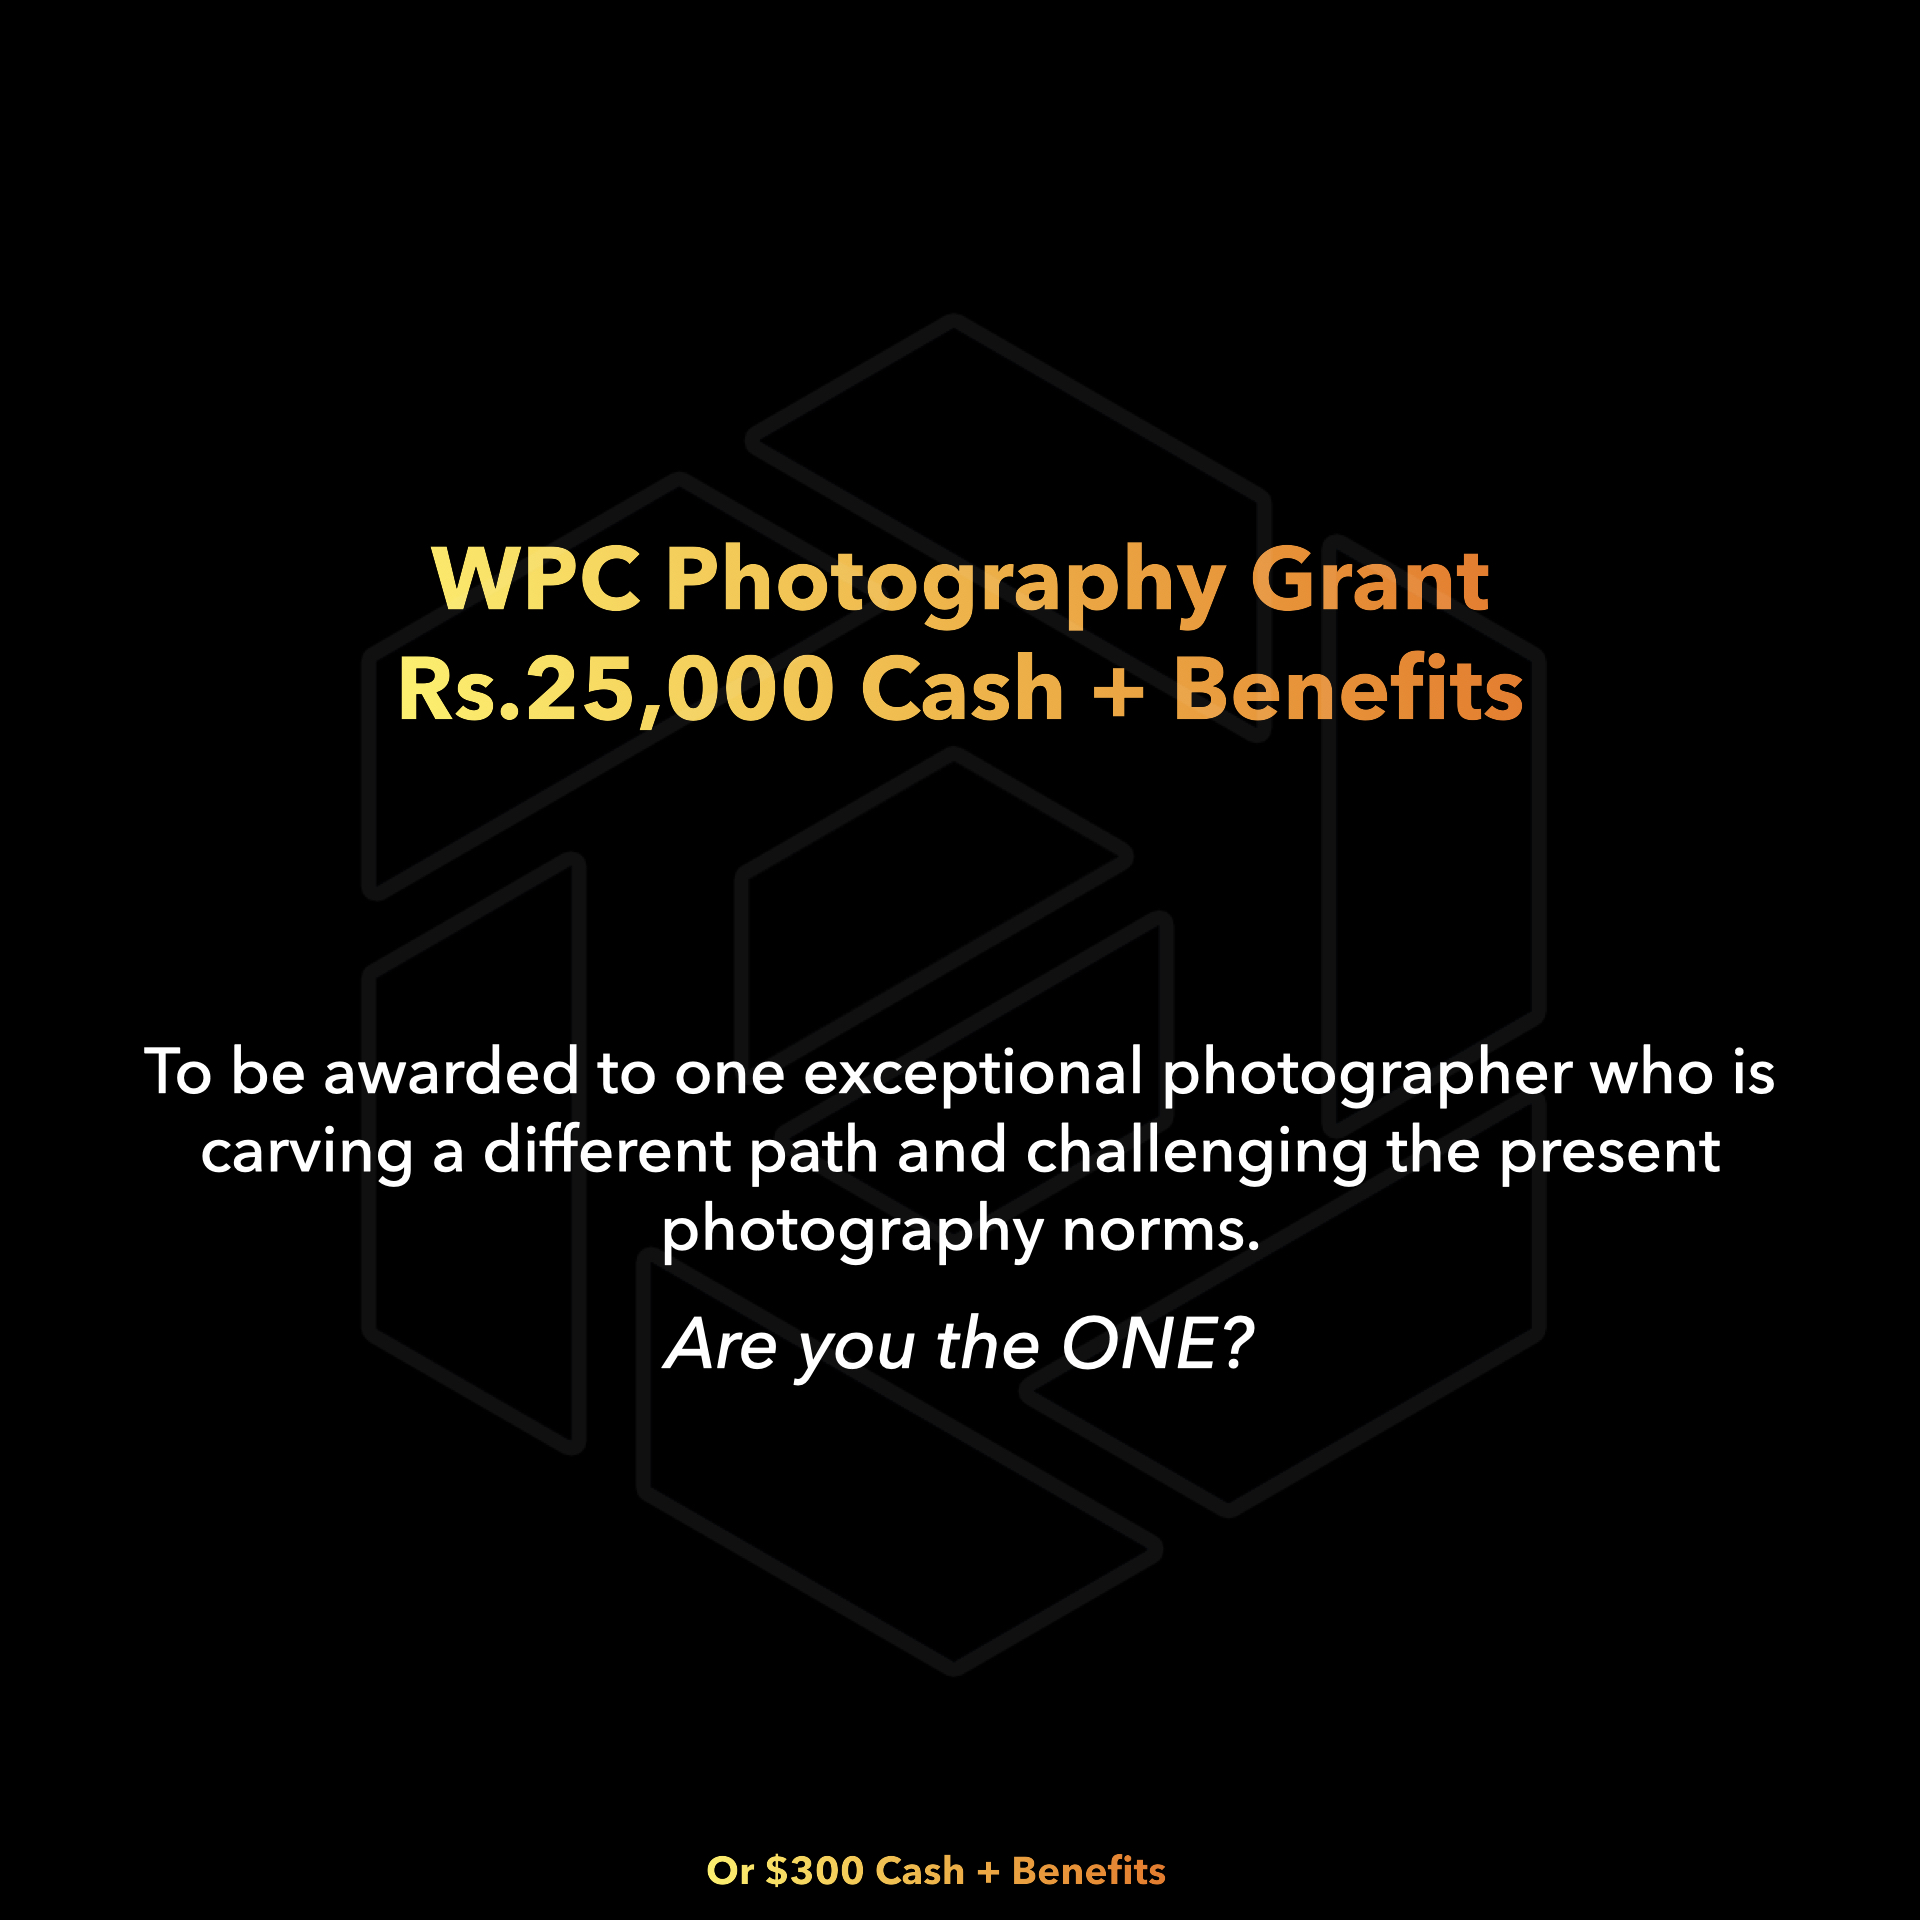 WPC Photography Grant 2020